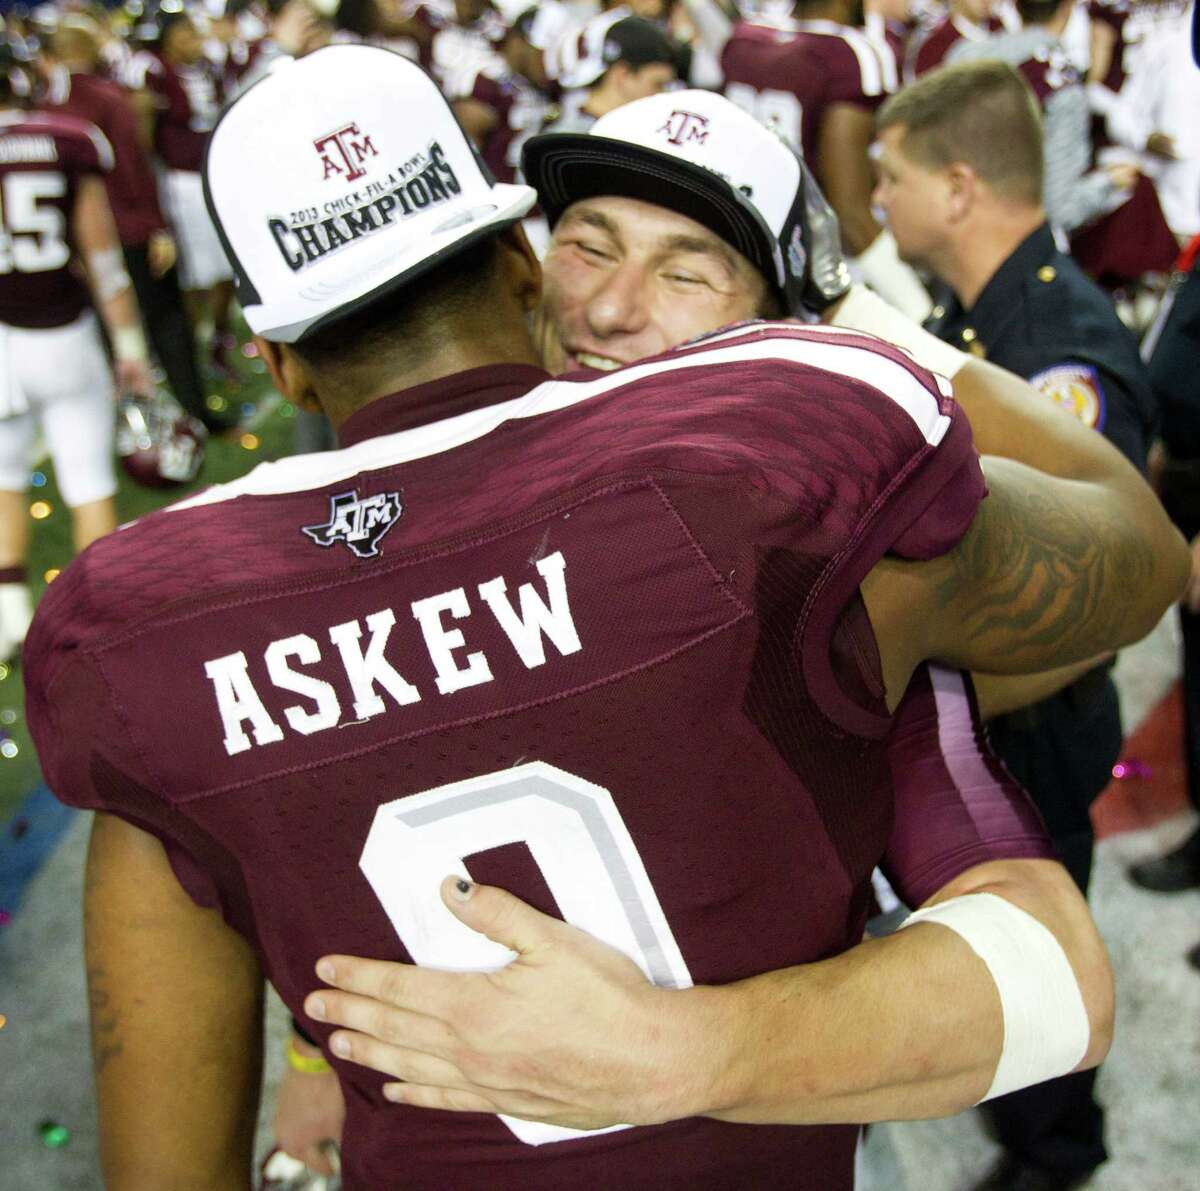 Johnny Manziel, right, and senior linebacker Nate Askew enjoy the Aggies' victory Tuesday night in what was definitely Askew's final college game and probably the finale for the redshirt sophomore quarterback as well.